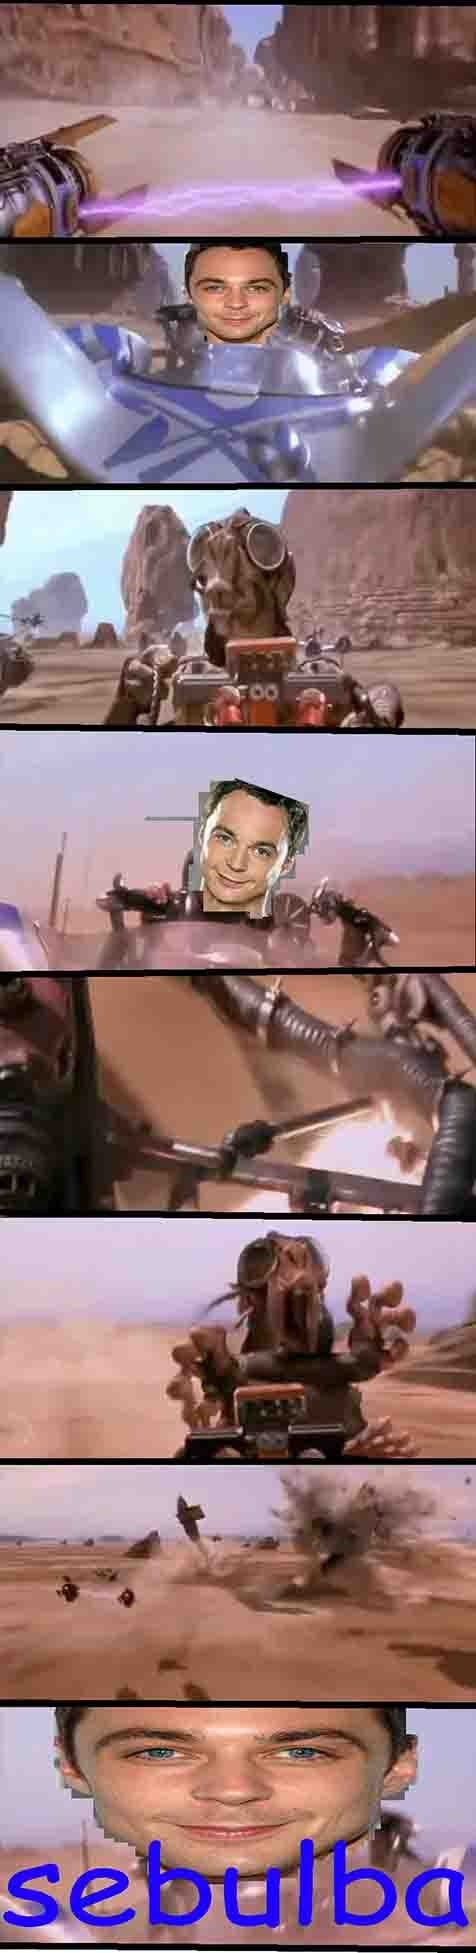 Sheldon Cooper star wars the big bang theory the phantom menace dolan jim parsons - 7075199744